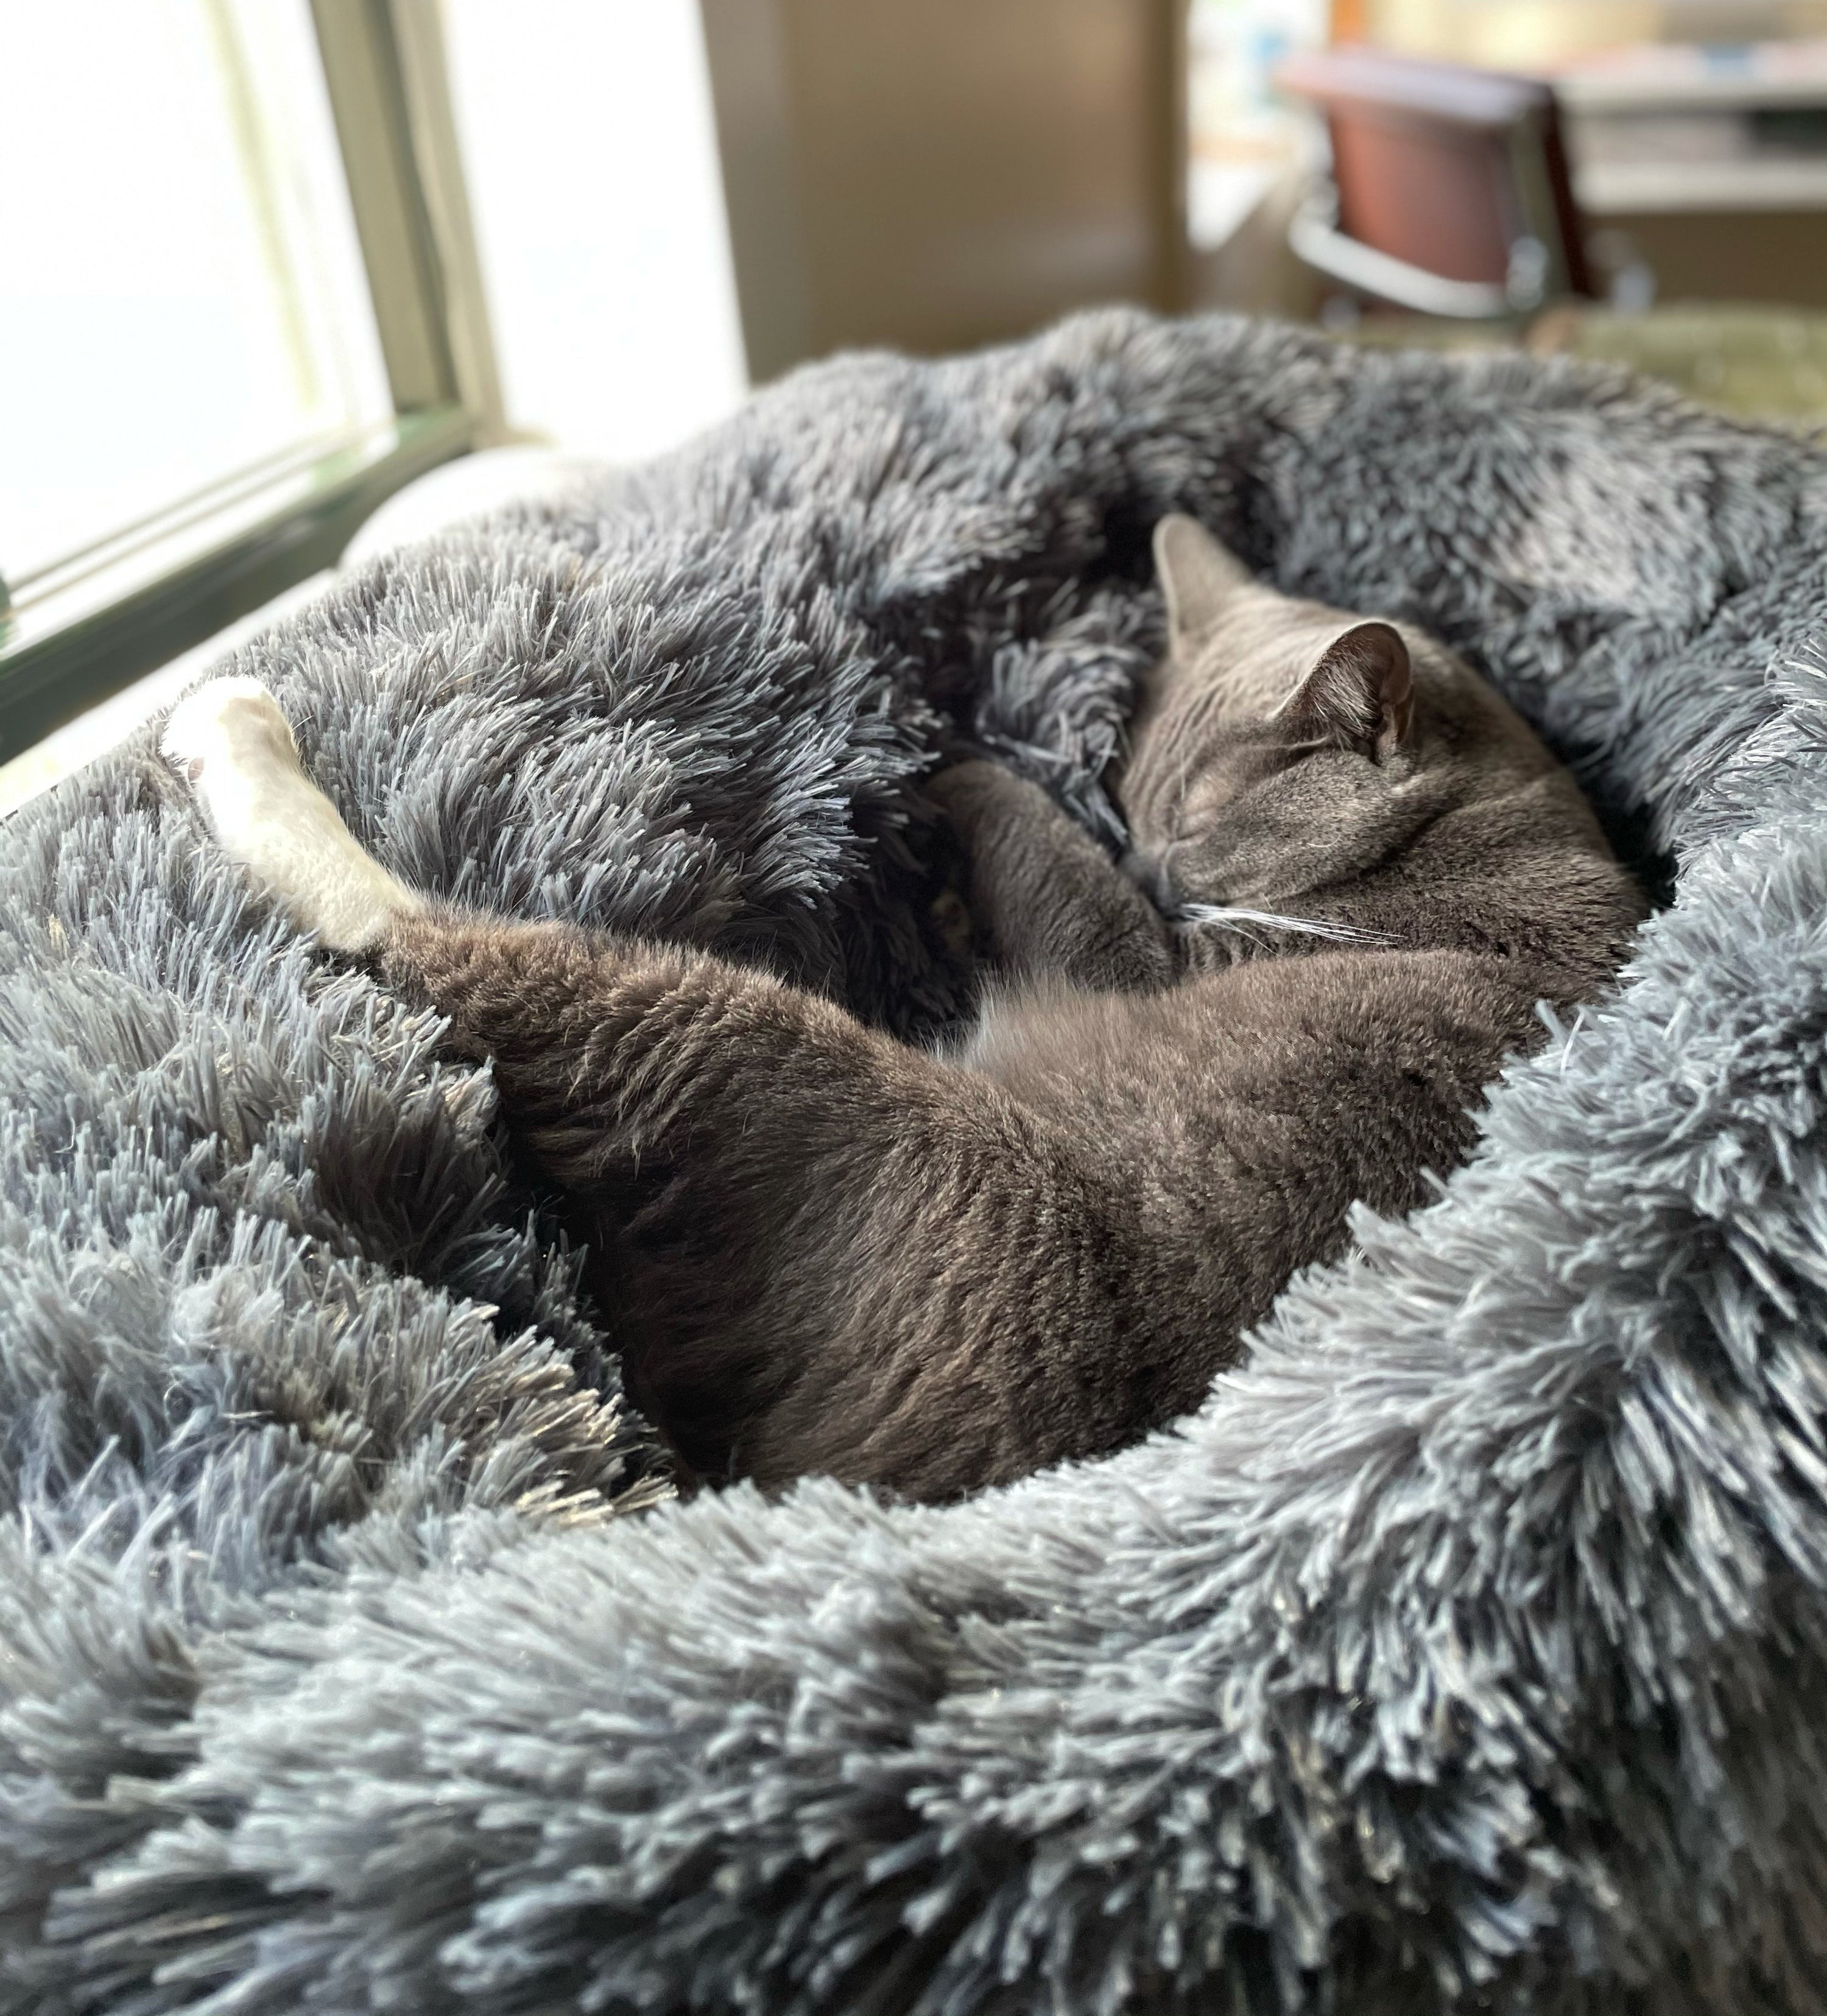 a buzzfeed editor's gray cat sleeping inside of the gray anti-anxiety bed